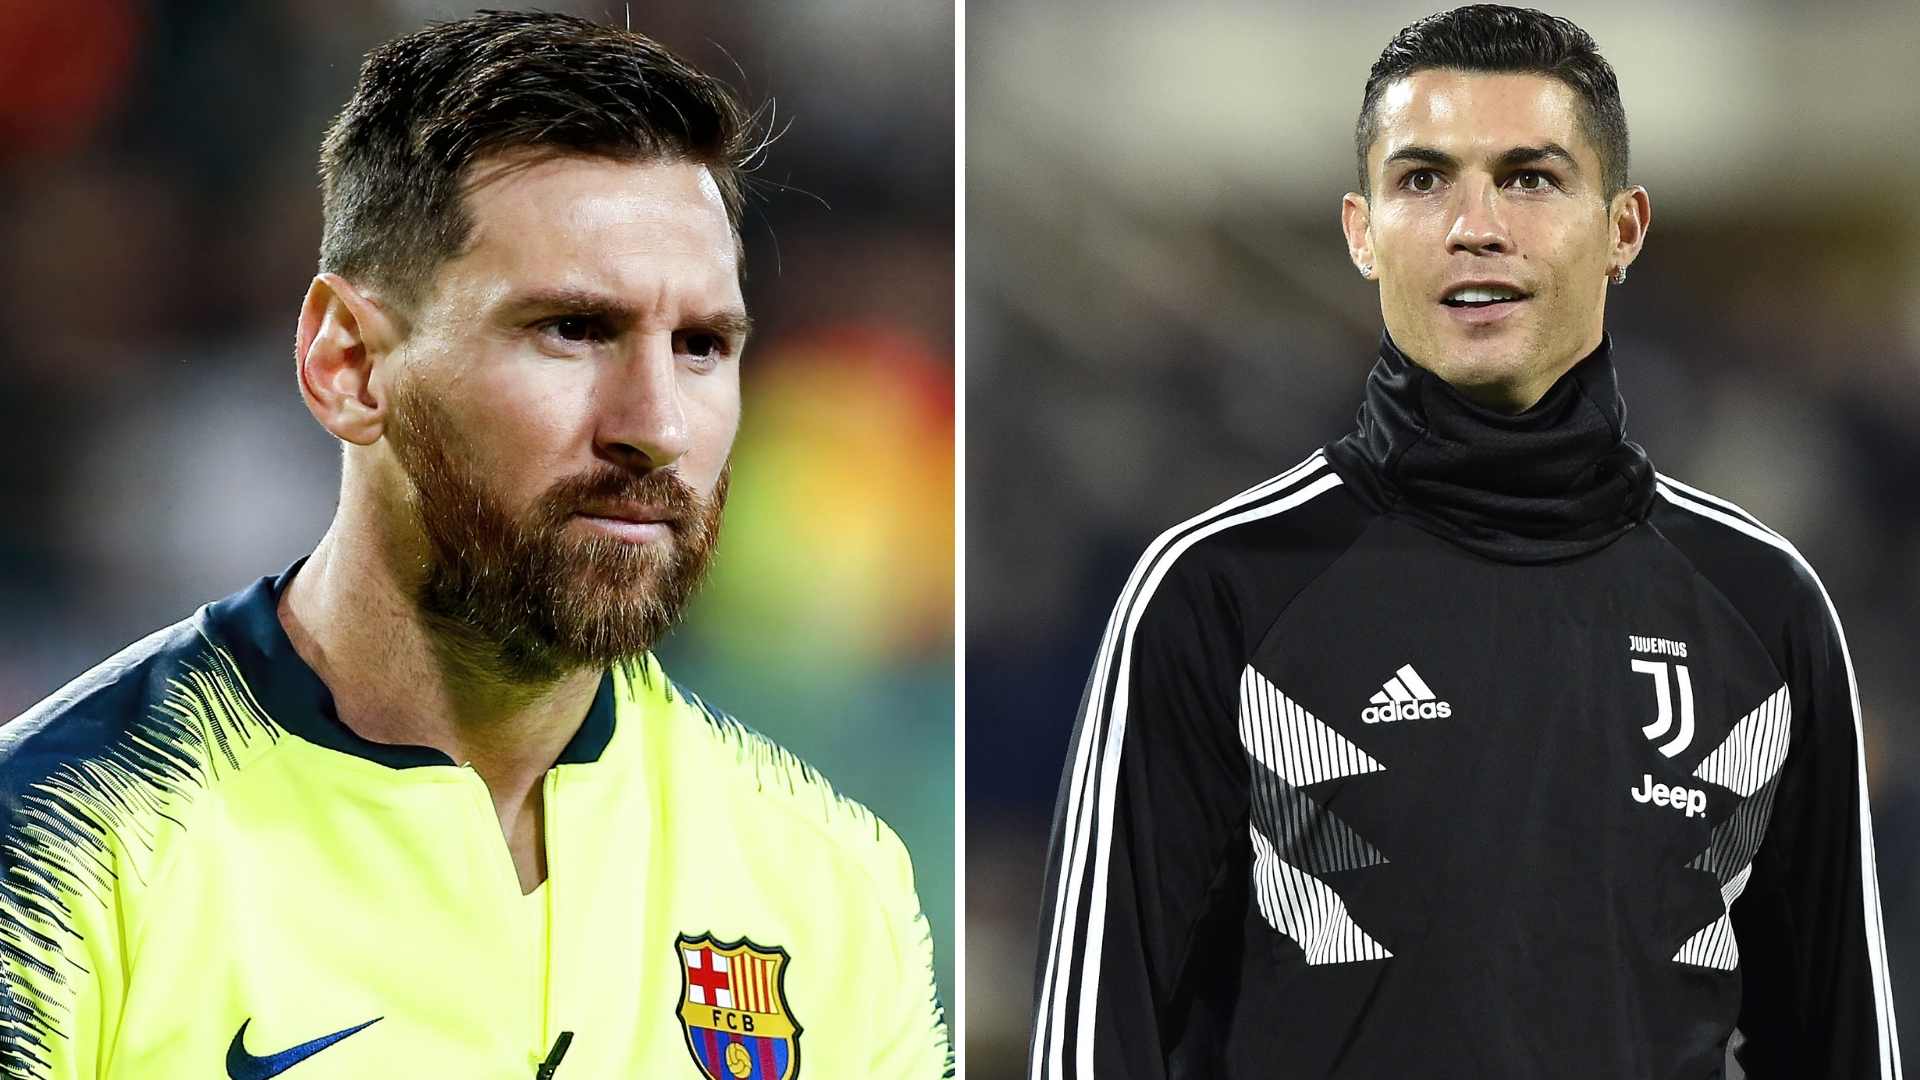 Video Shows How Good Messi Is Against Italian Teams After Ronaldo's Serie A Challenge